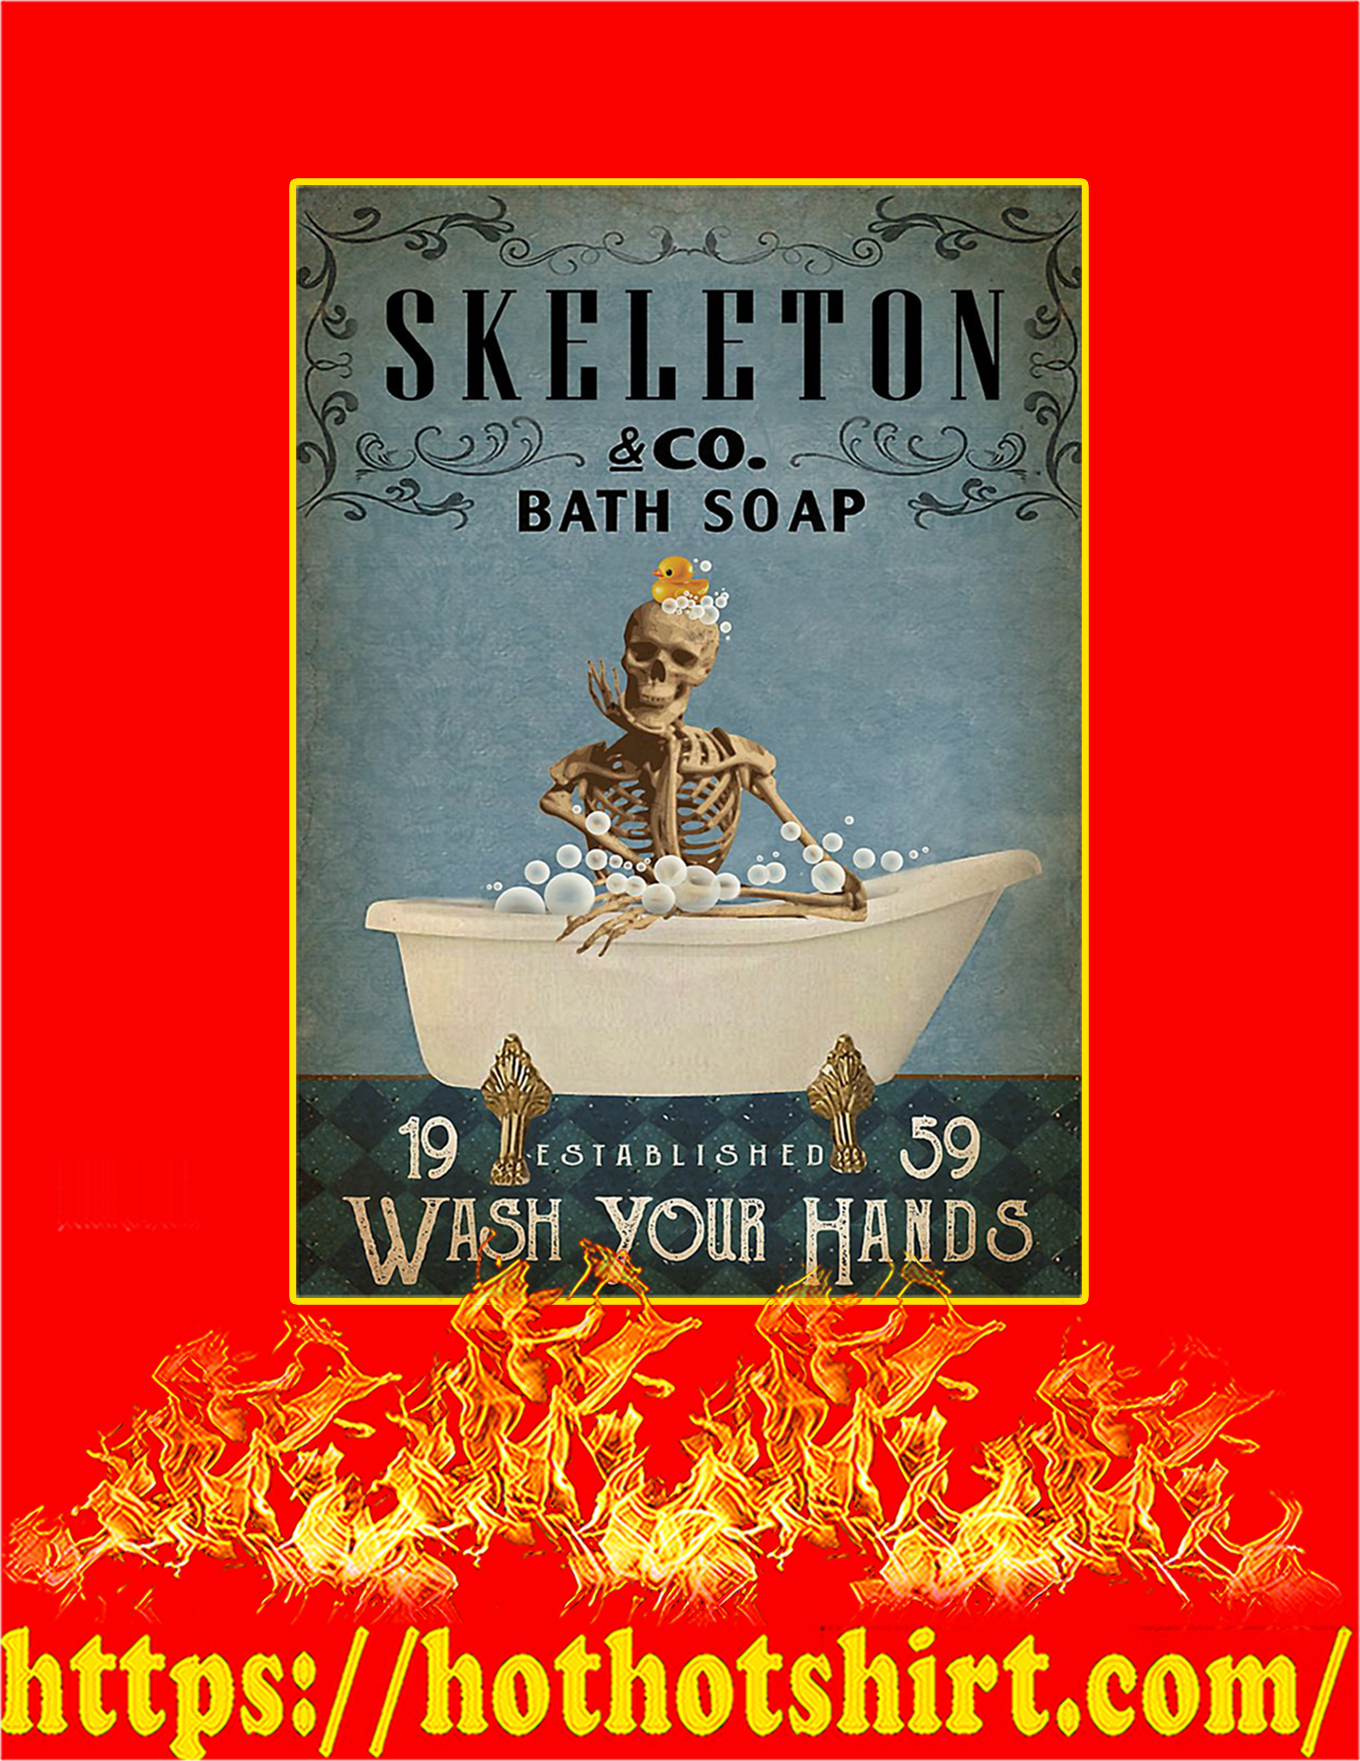 Skeleton Co Bath Soap Wash Your Hands Poster - A2